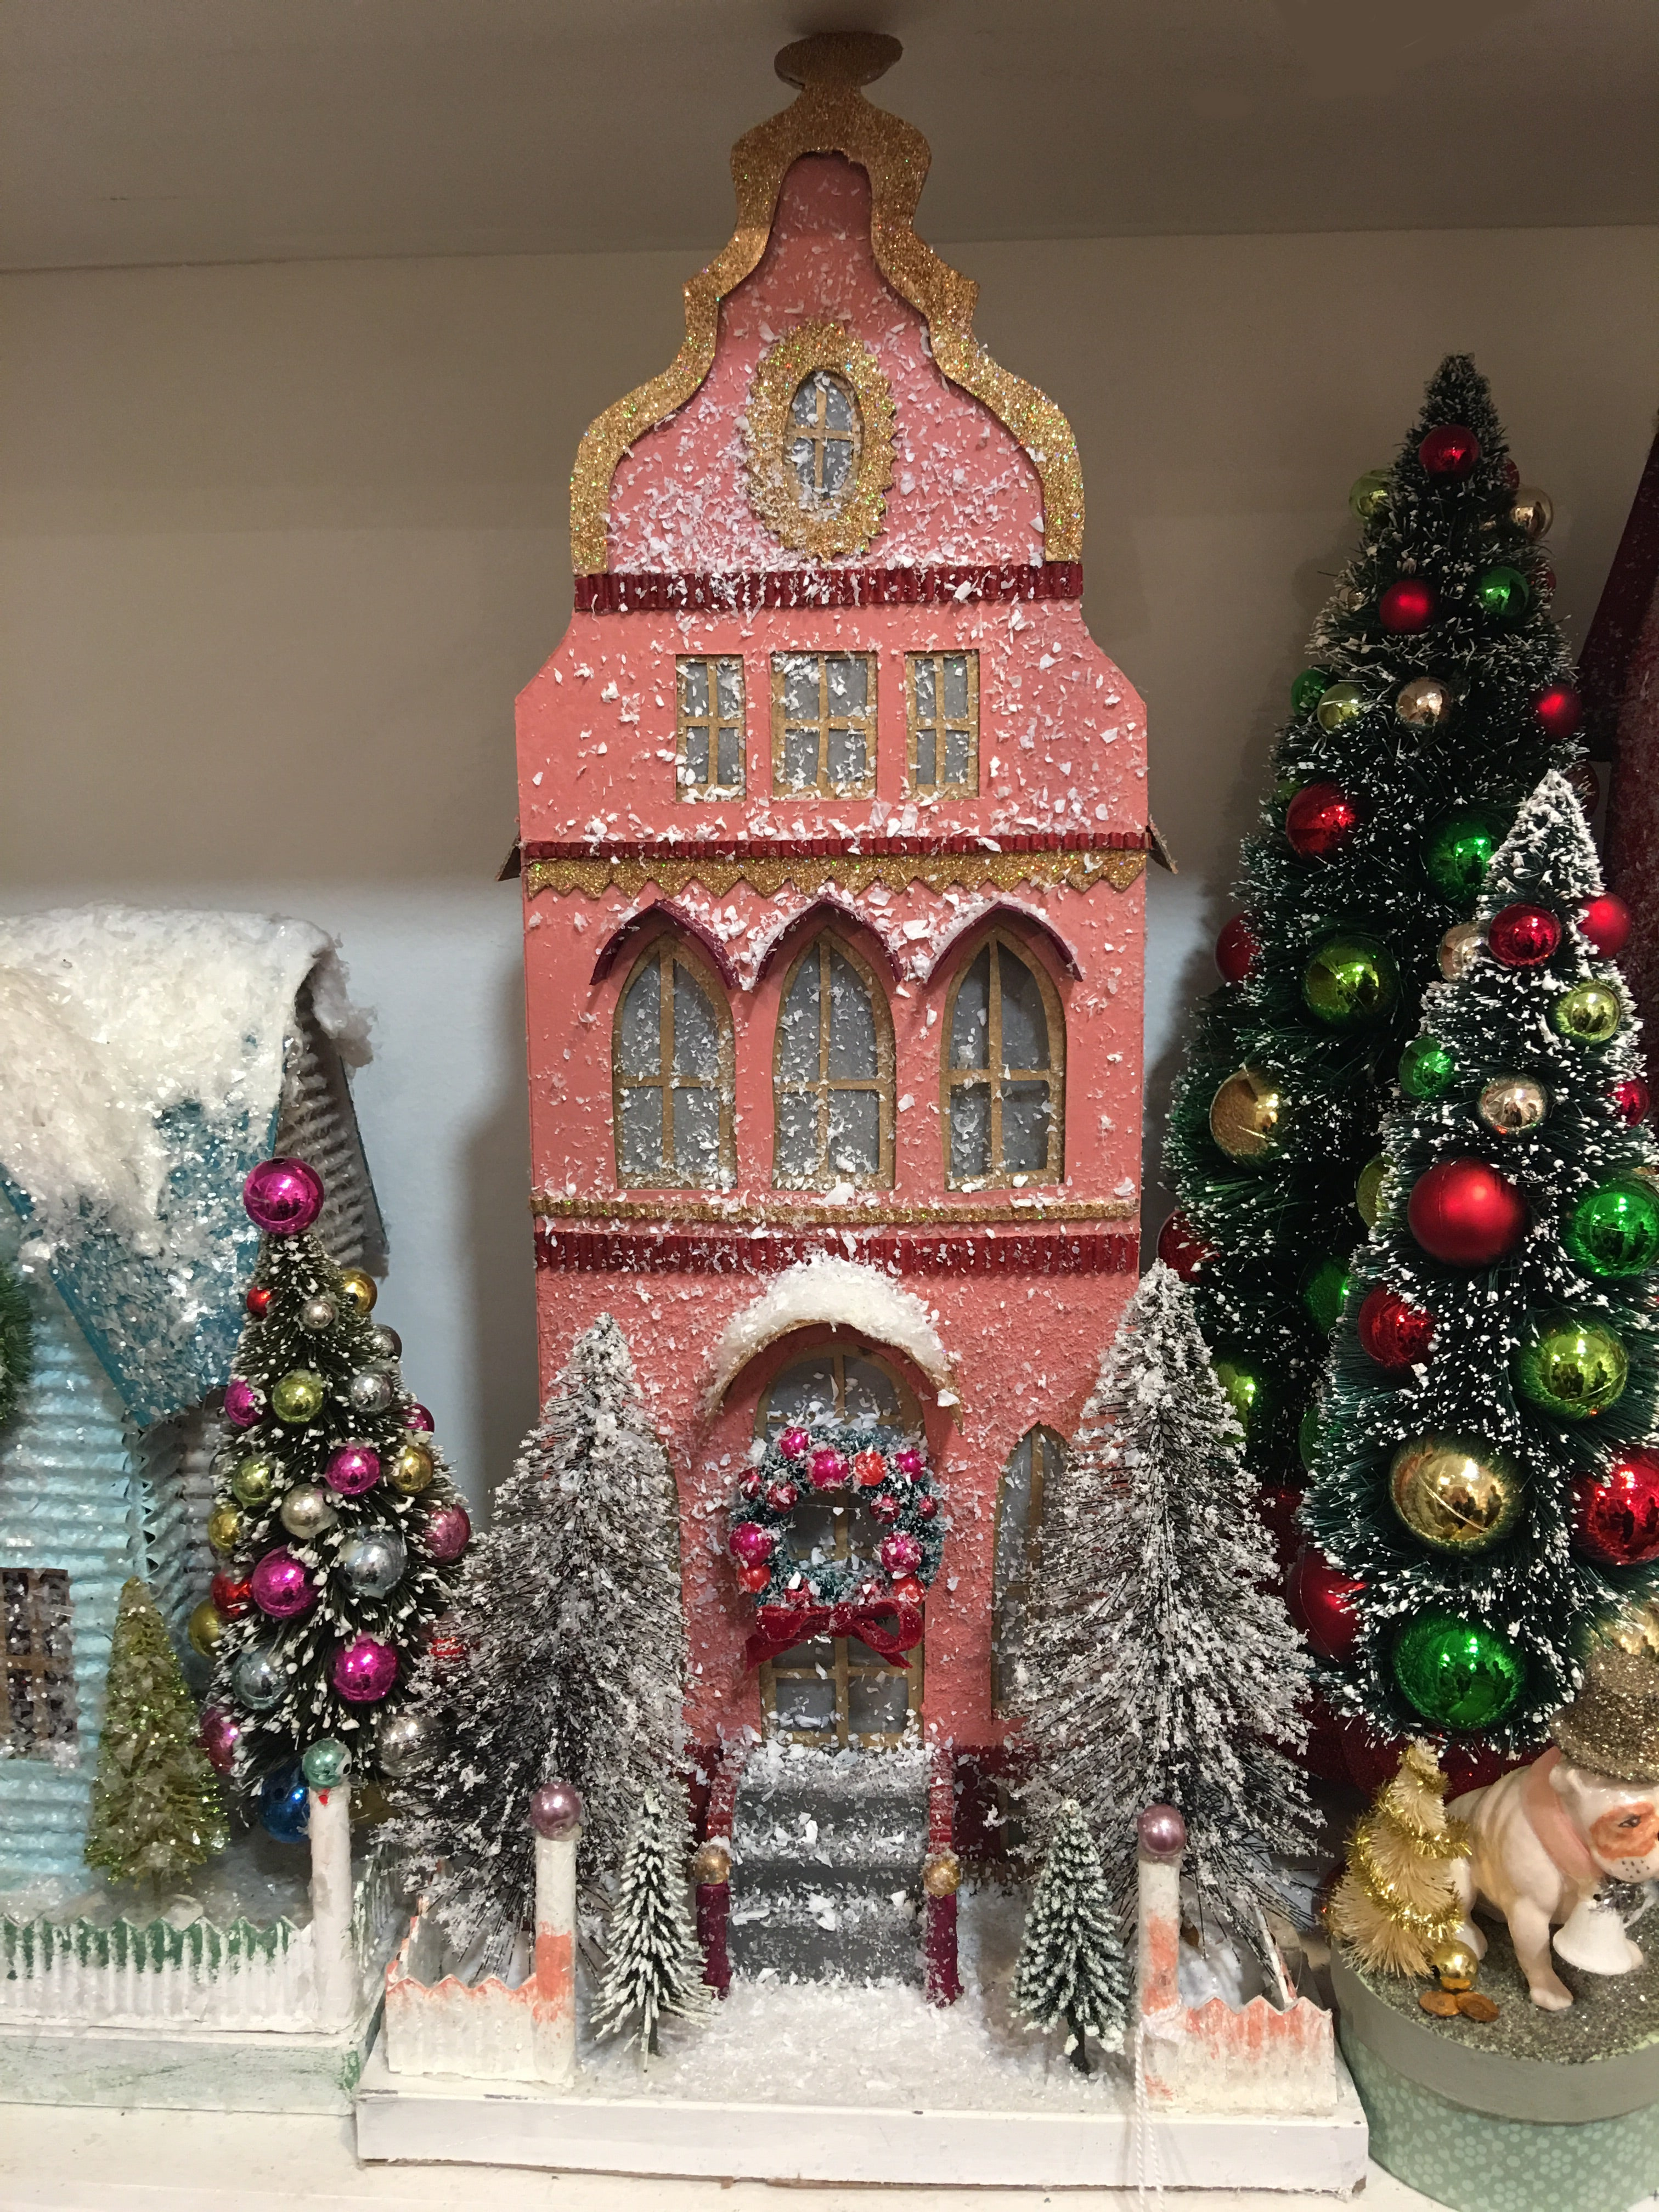 Coral Townhouse - Putz Christmas Houses